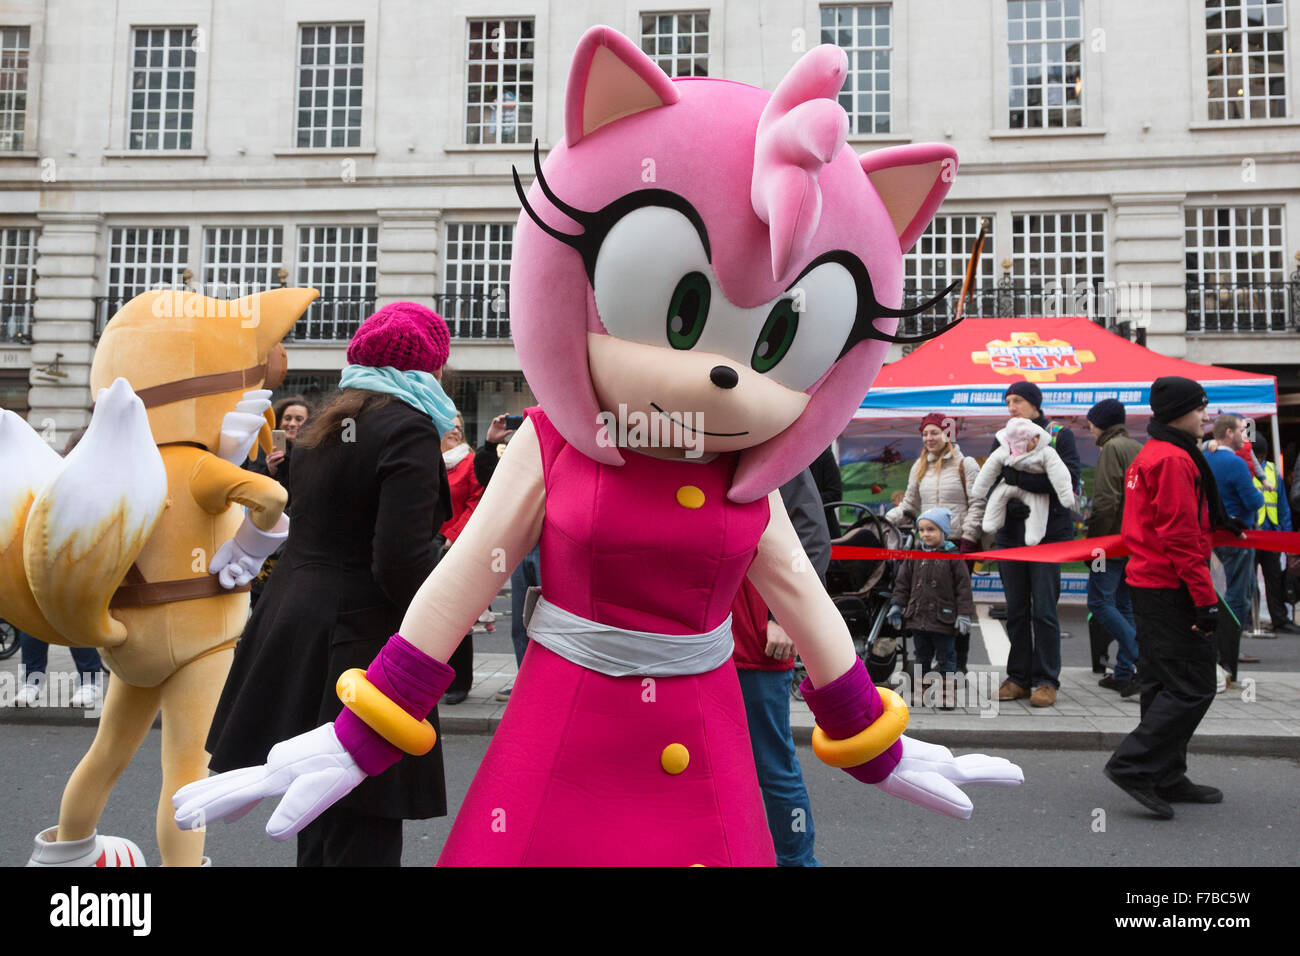 Amy Off Of Sonic london, uk. 28 november 2015. character amy rose from sega's